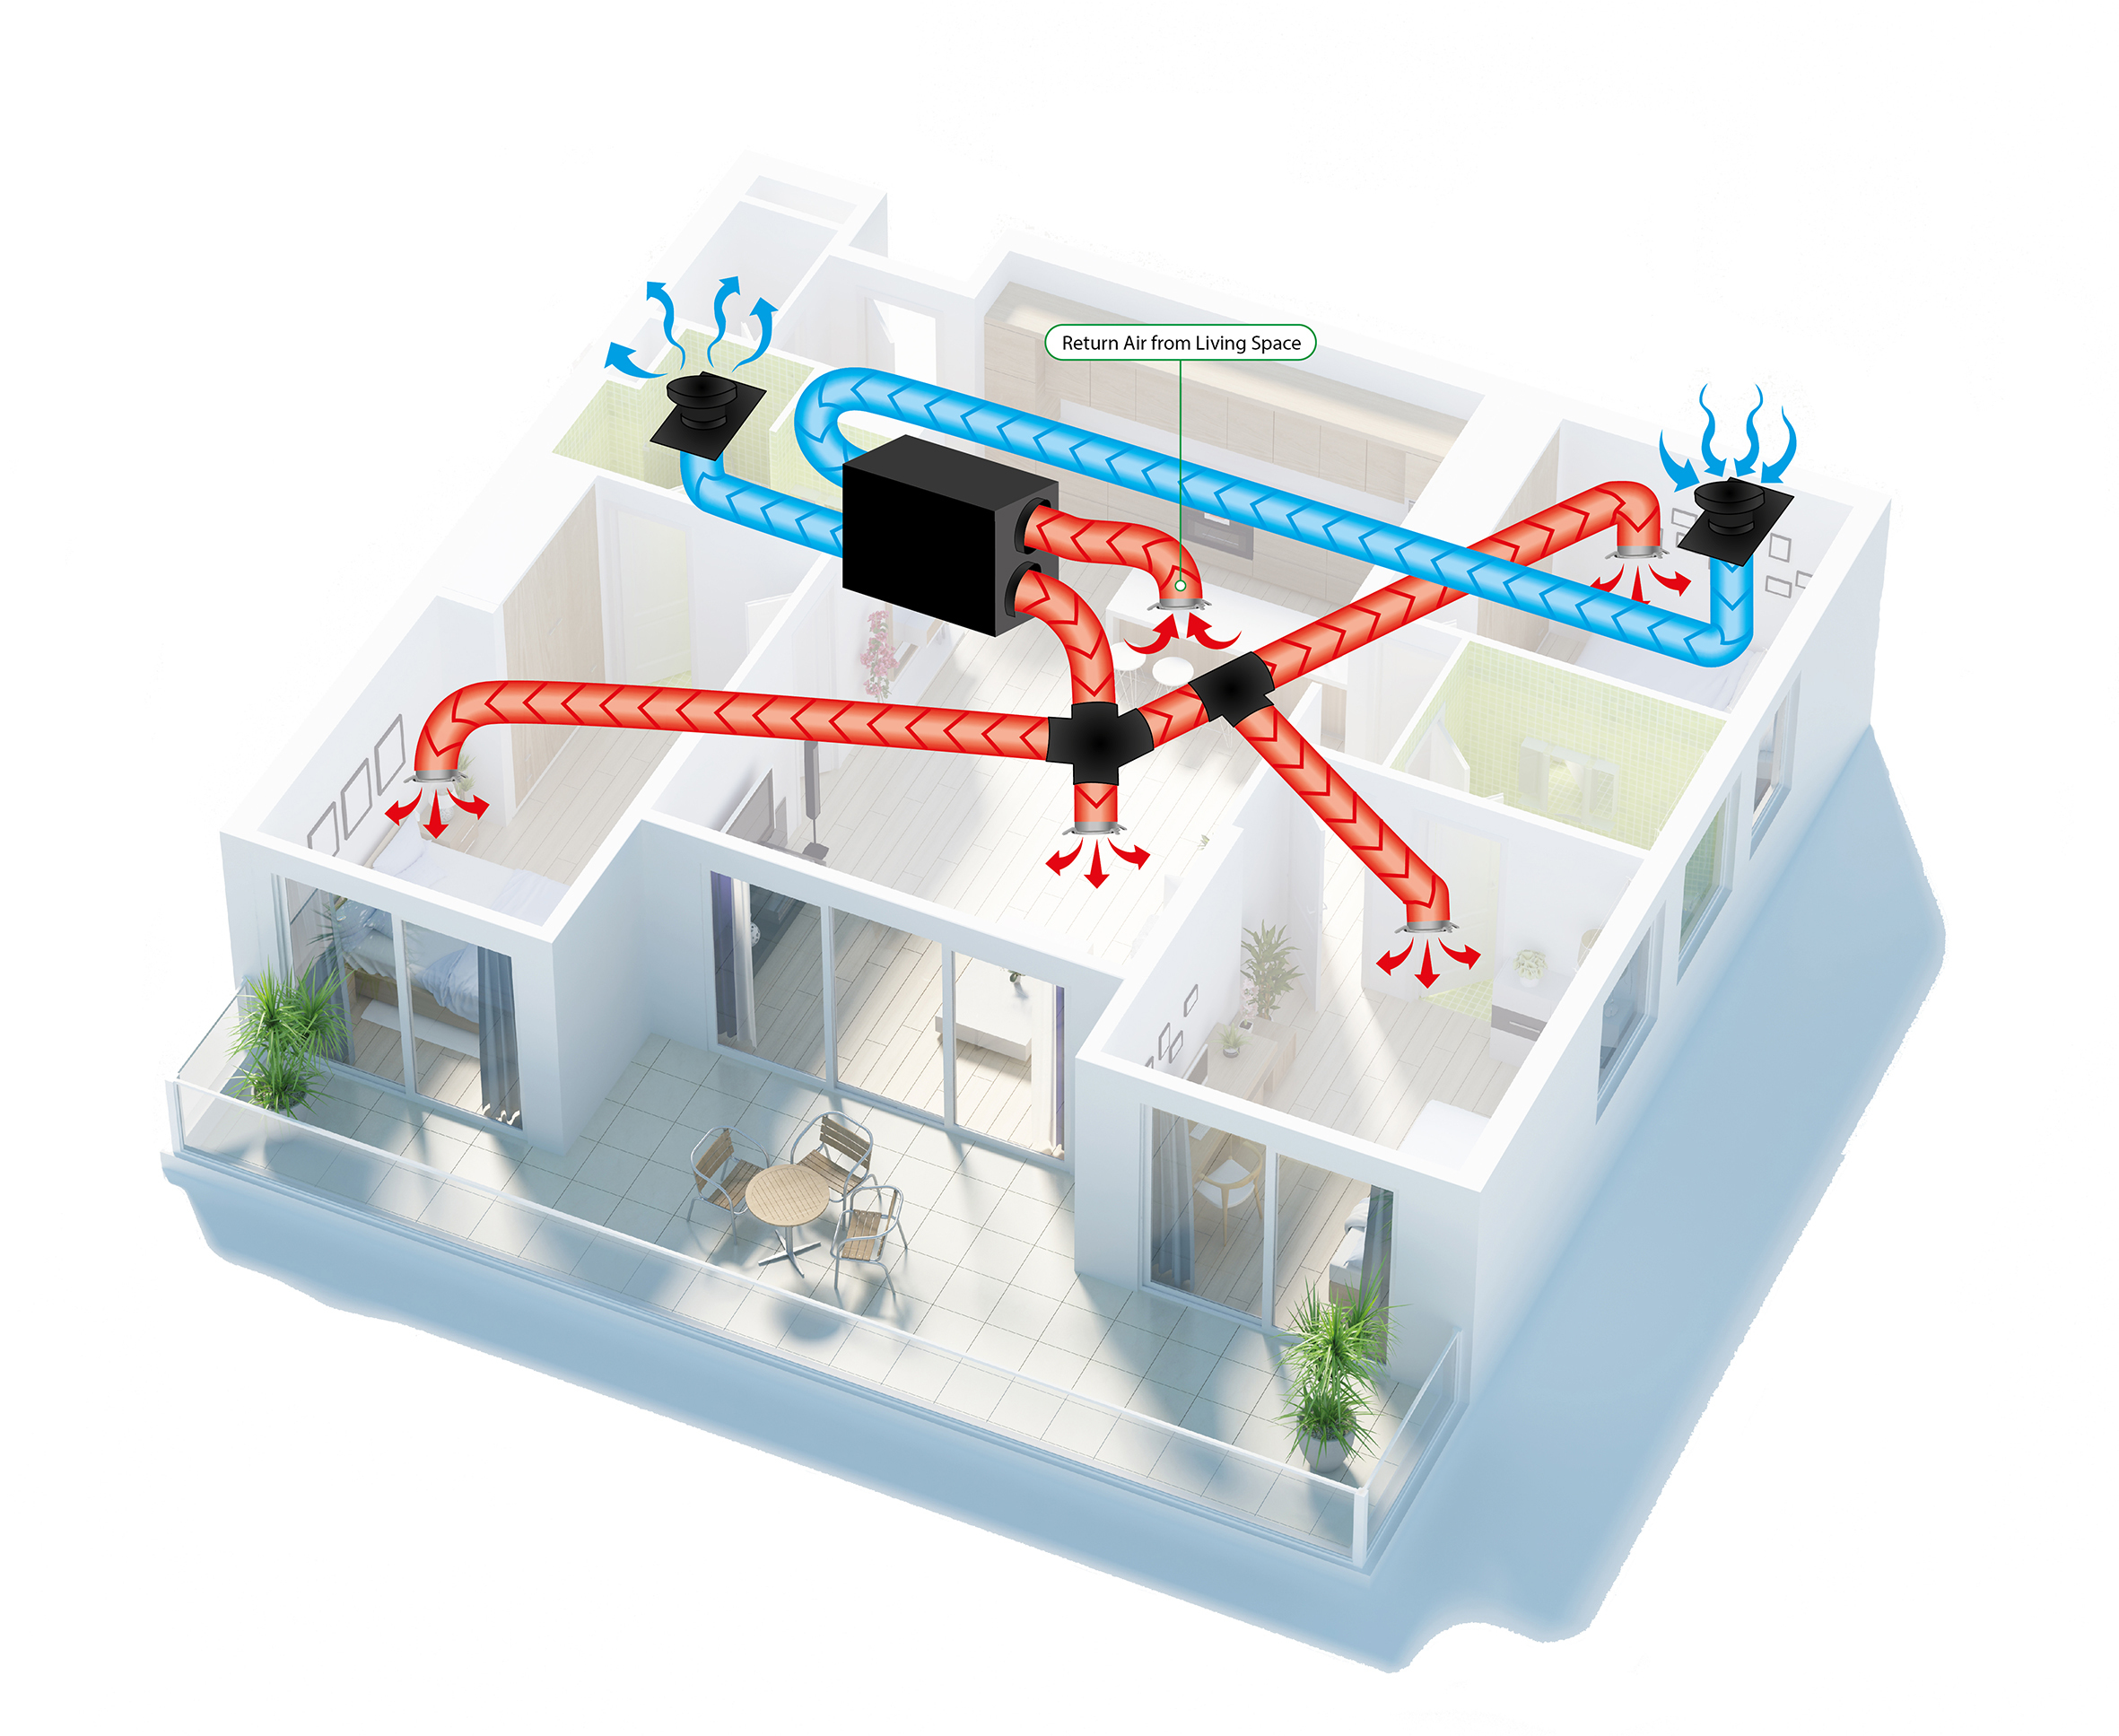 Illustration showing Unovent's Xchange ventilation system from above